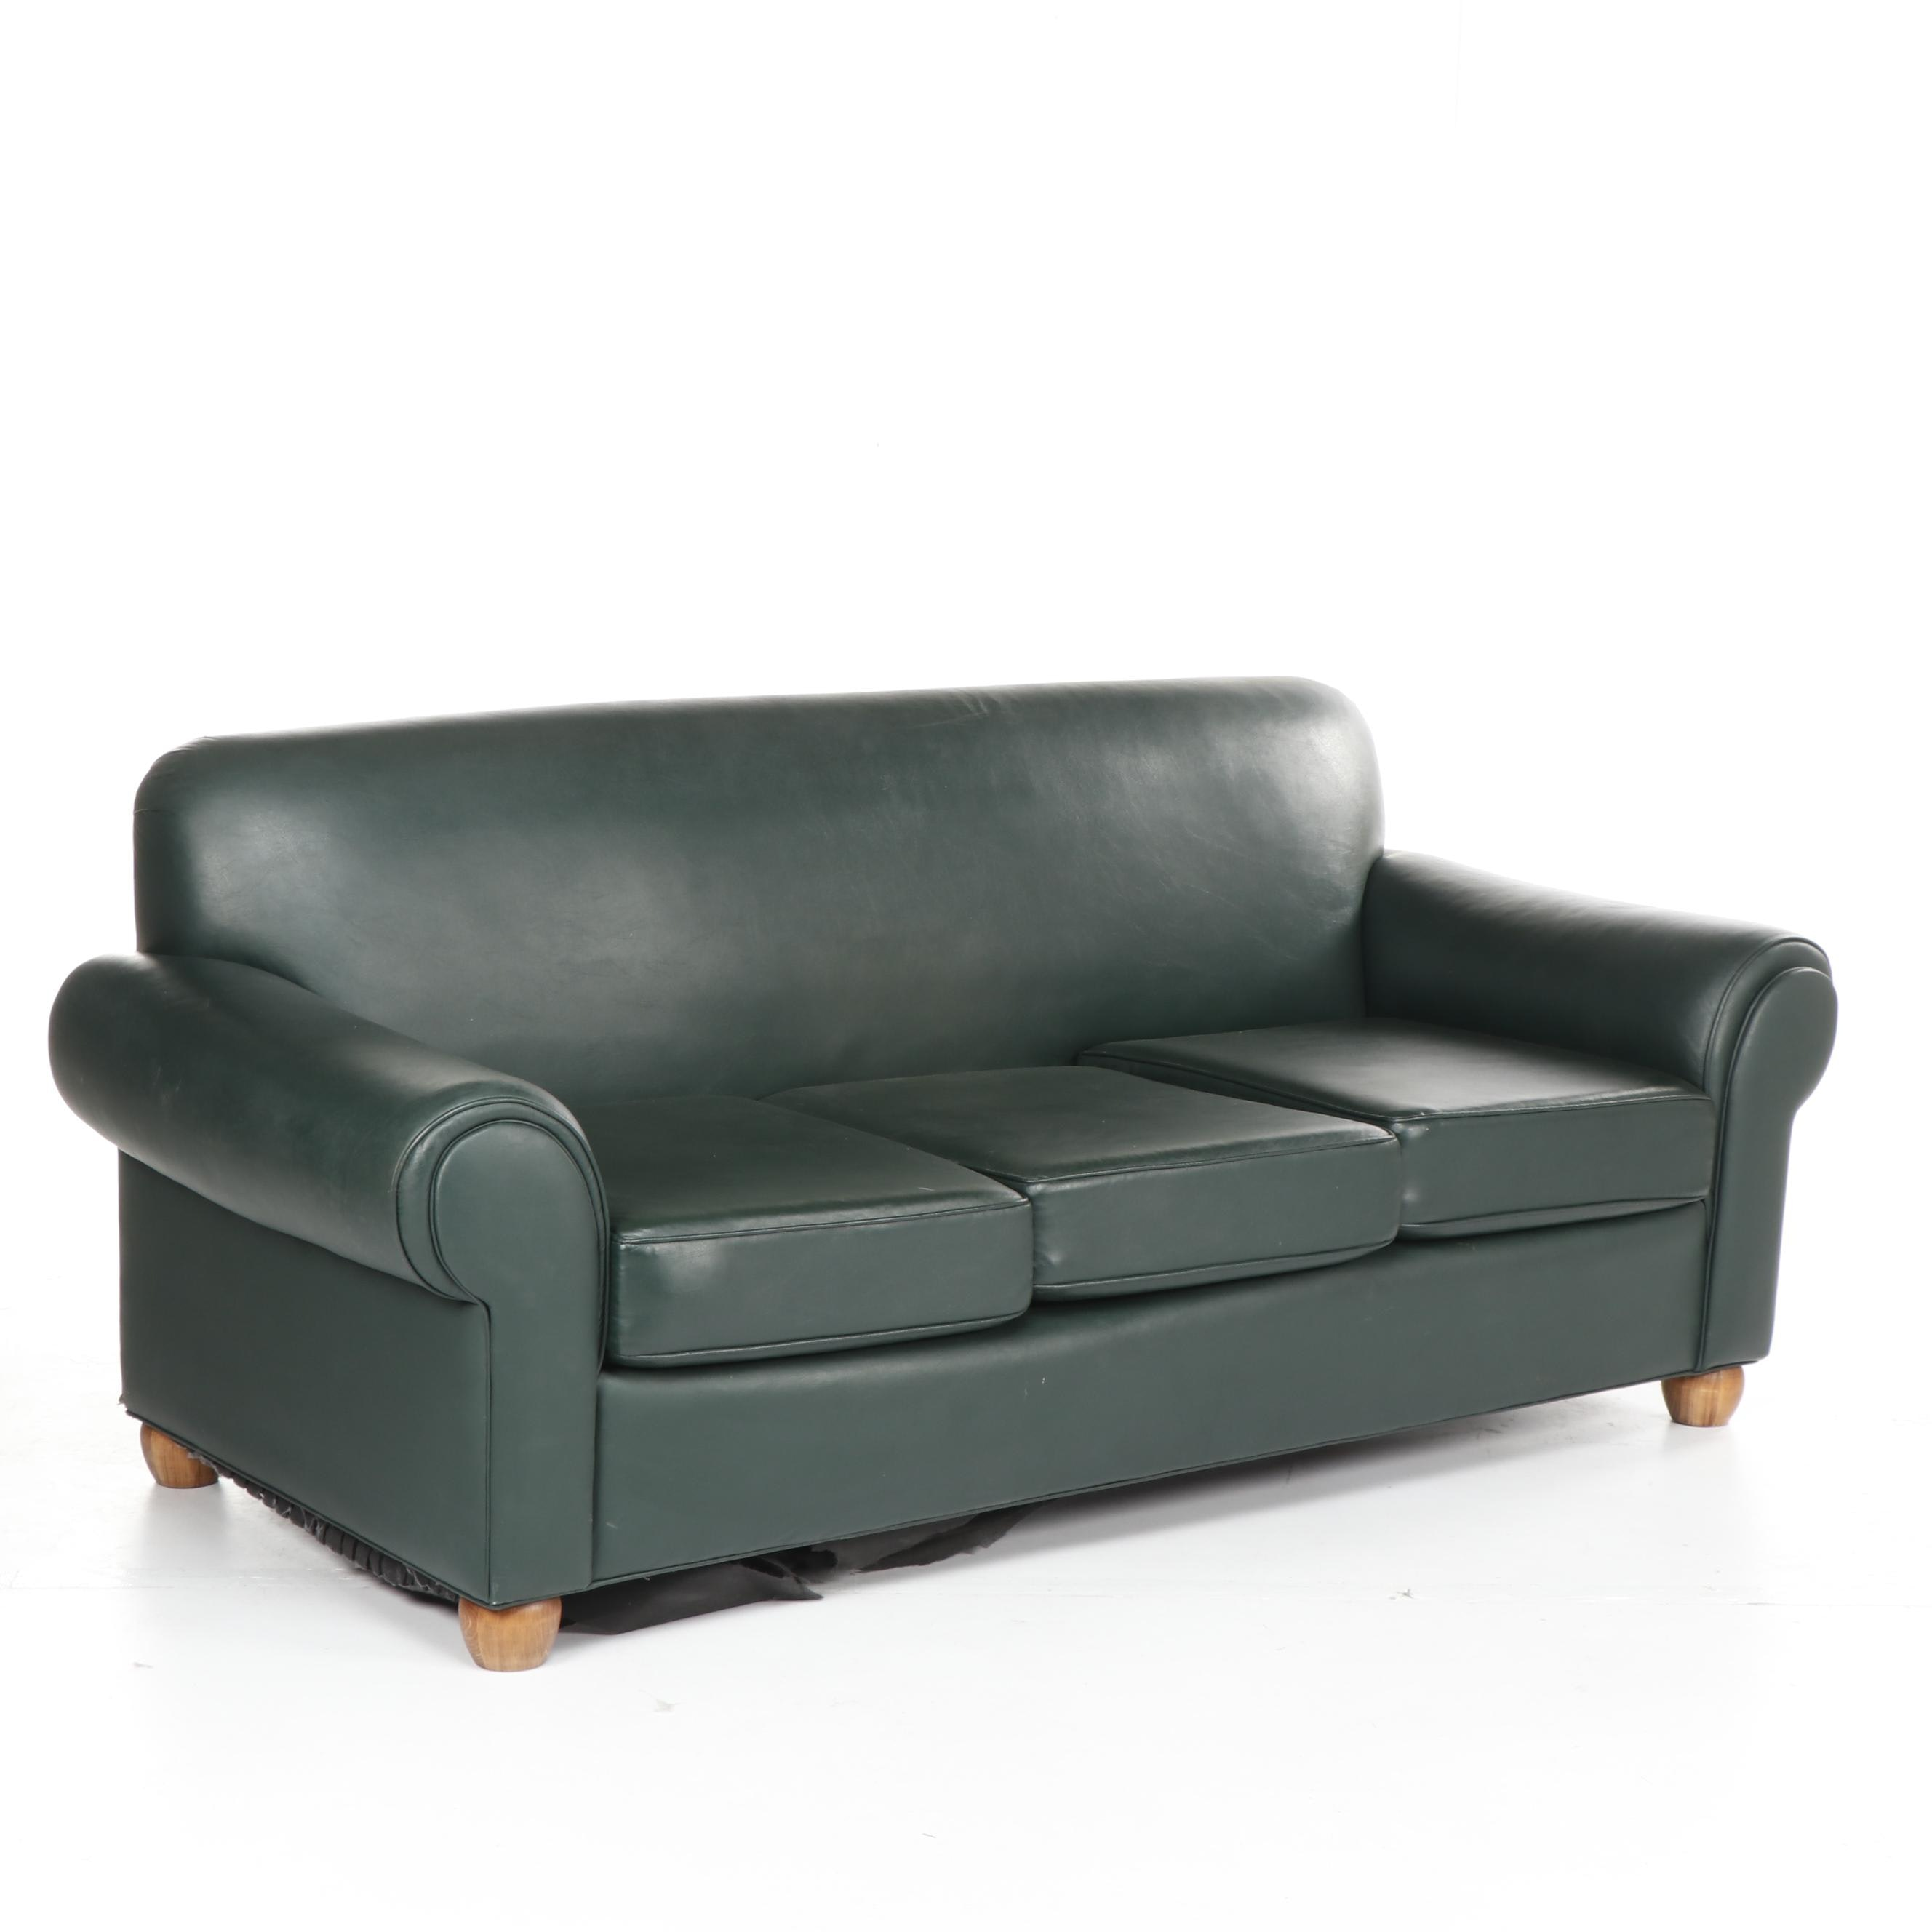 Lawson Style Green Faux Leather Sofa, Late 20th Century